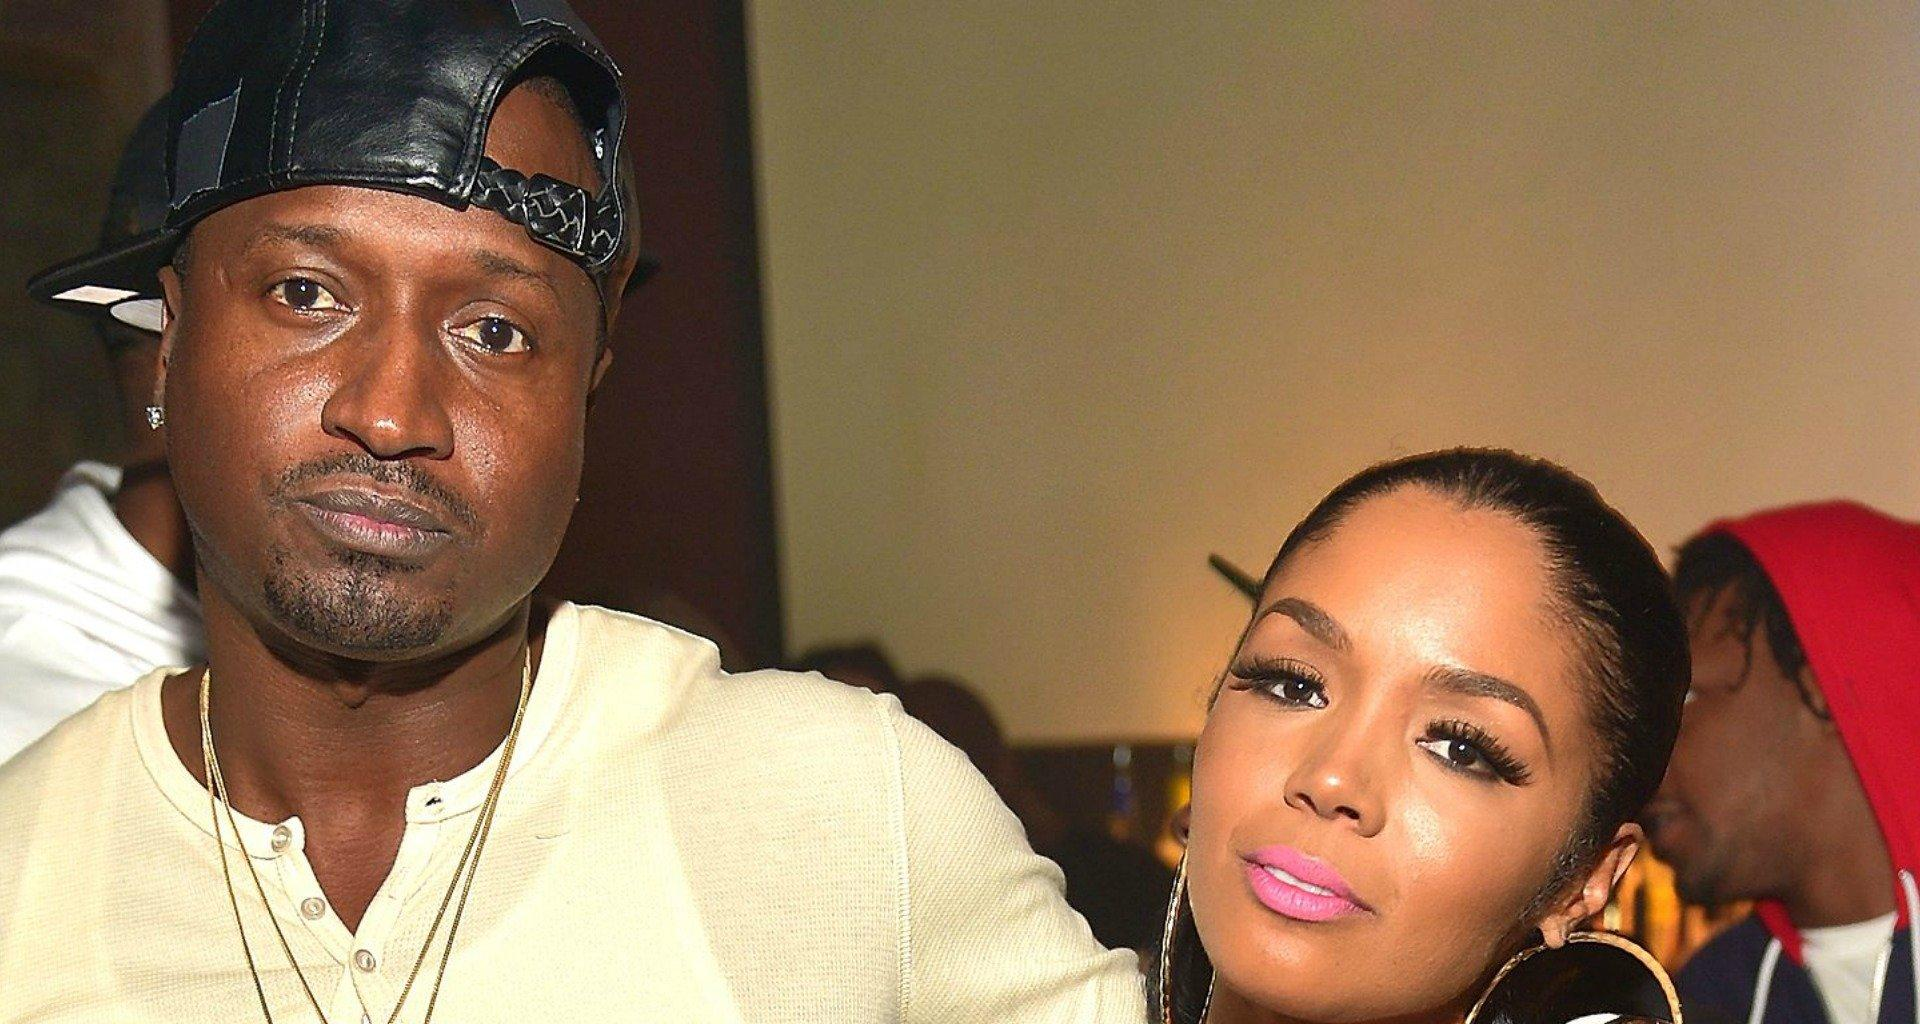 Rasheeda Frost Reveals A Tasty Surprise For Fans - Check Out The Video